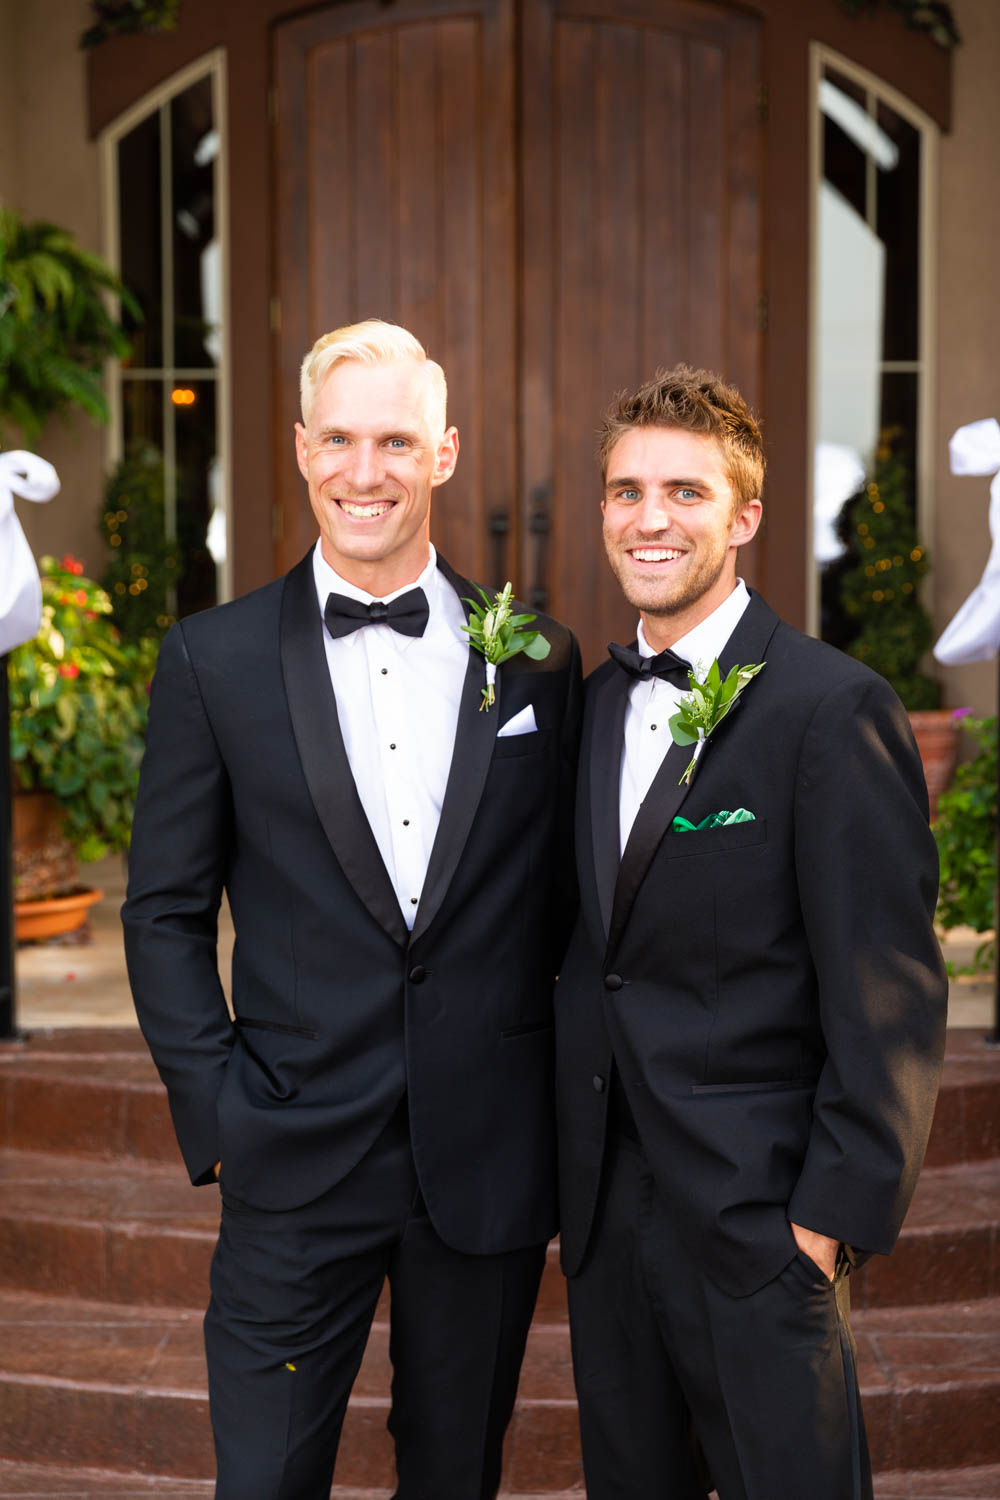 We photograph the groom with each groomsman